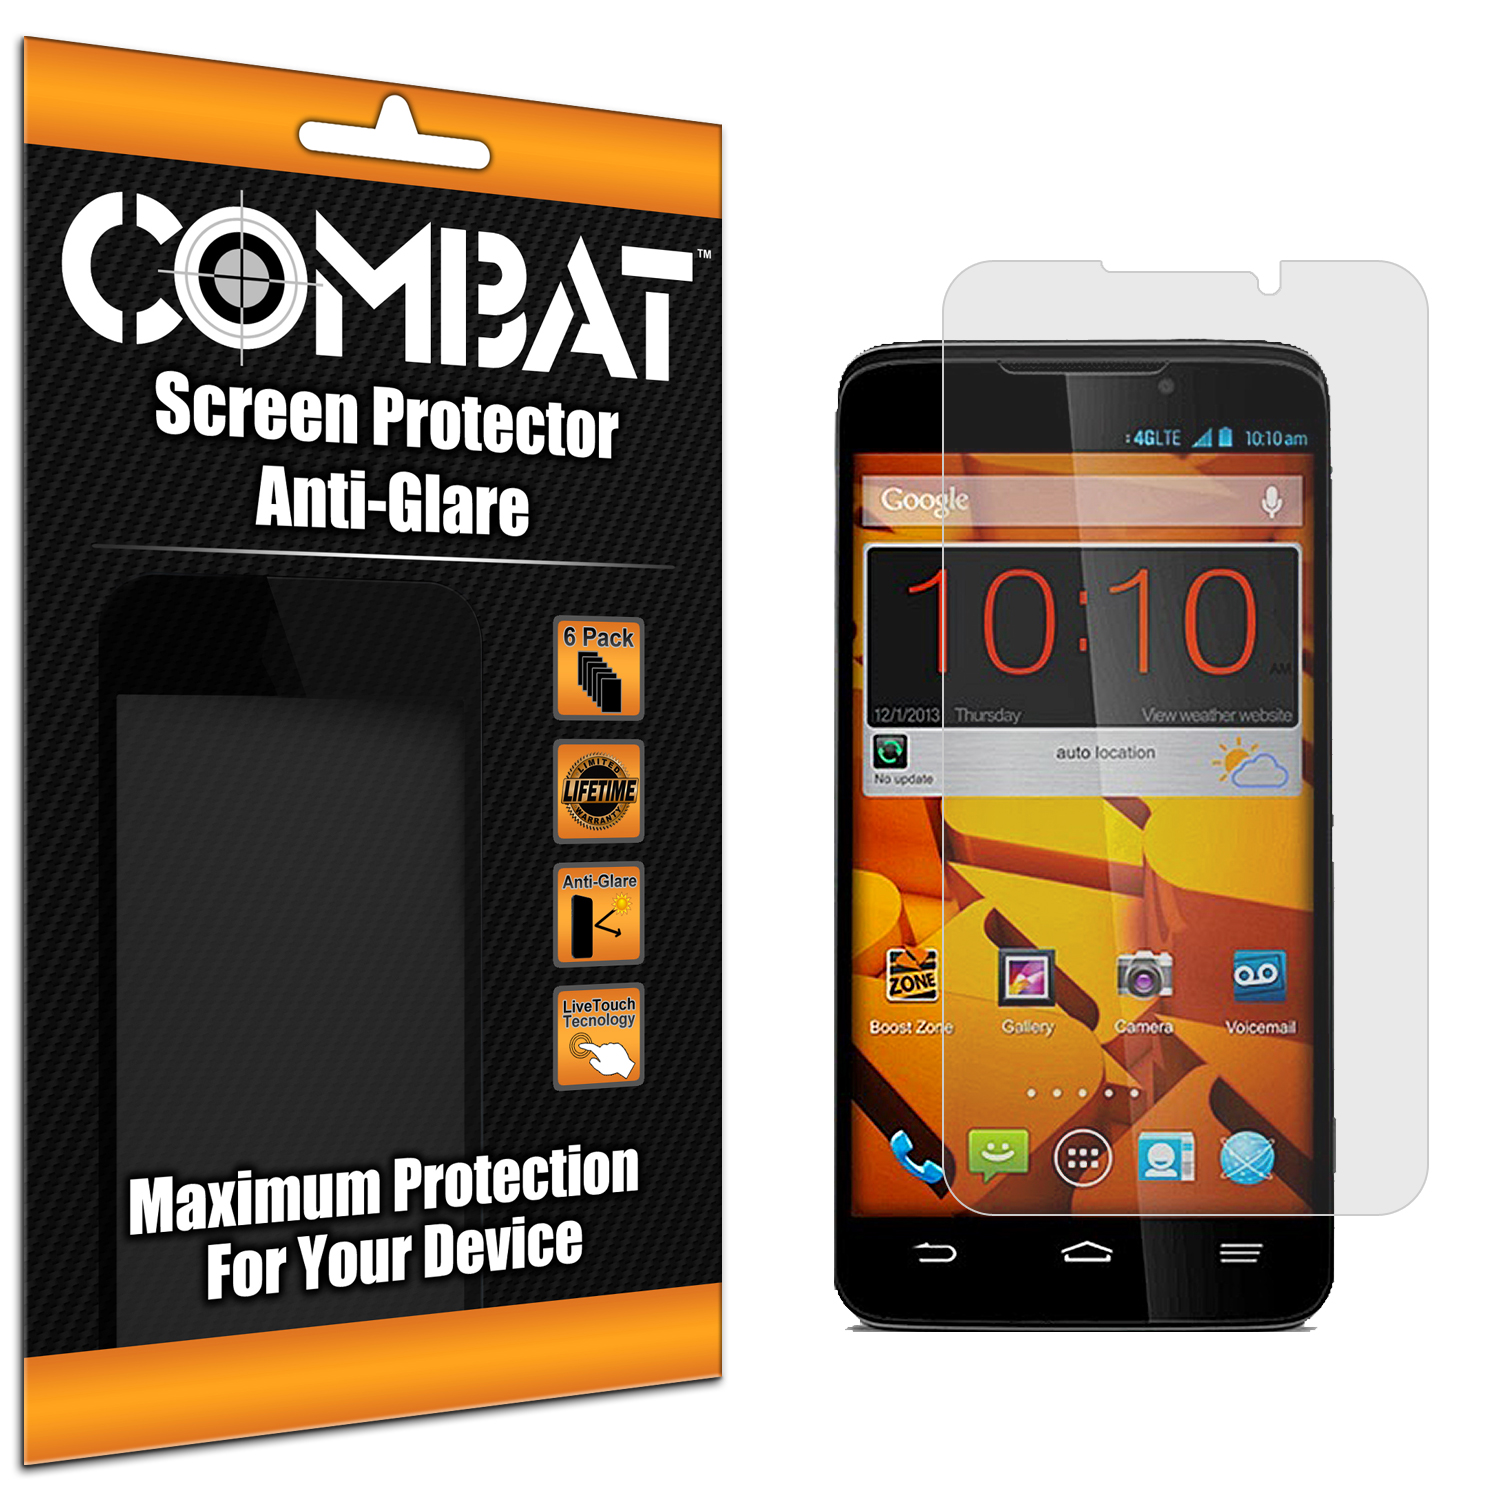 ZTE Boost Mobile Max N9520 Combat 6 Pack Anti-Glare Matte Screen Protector